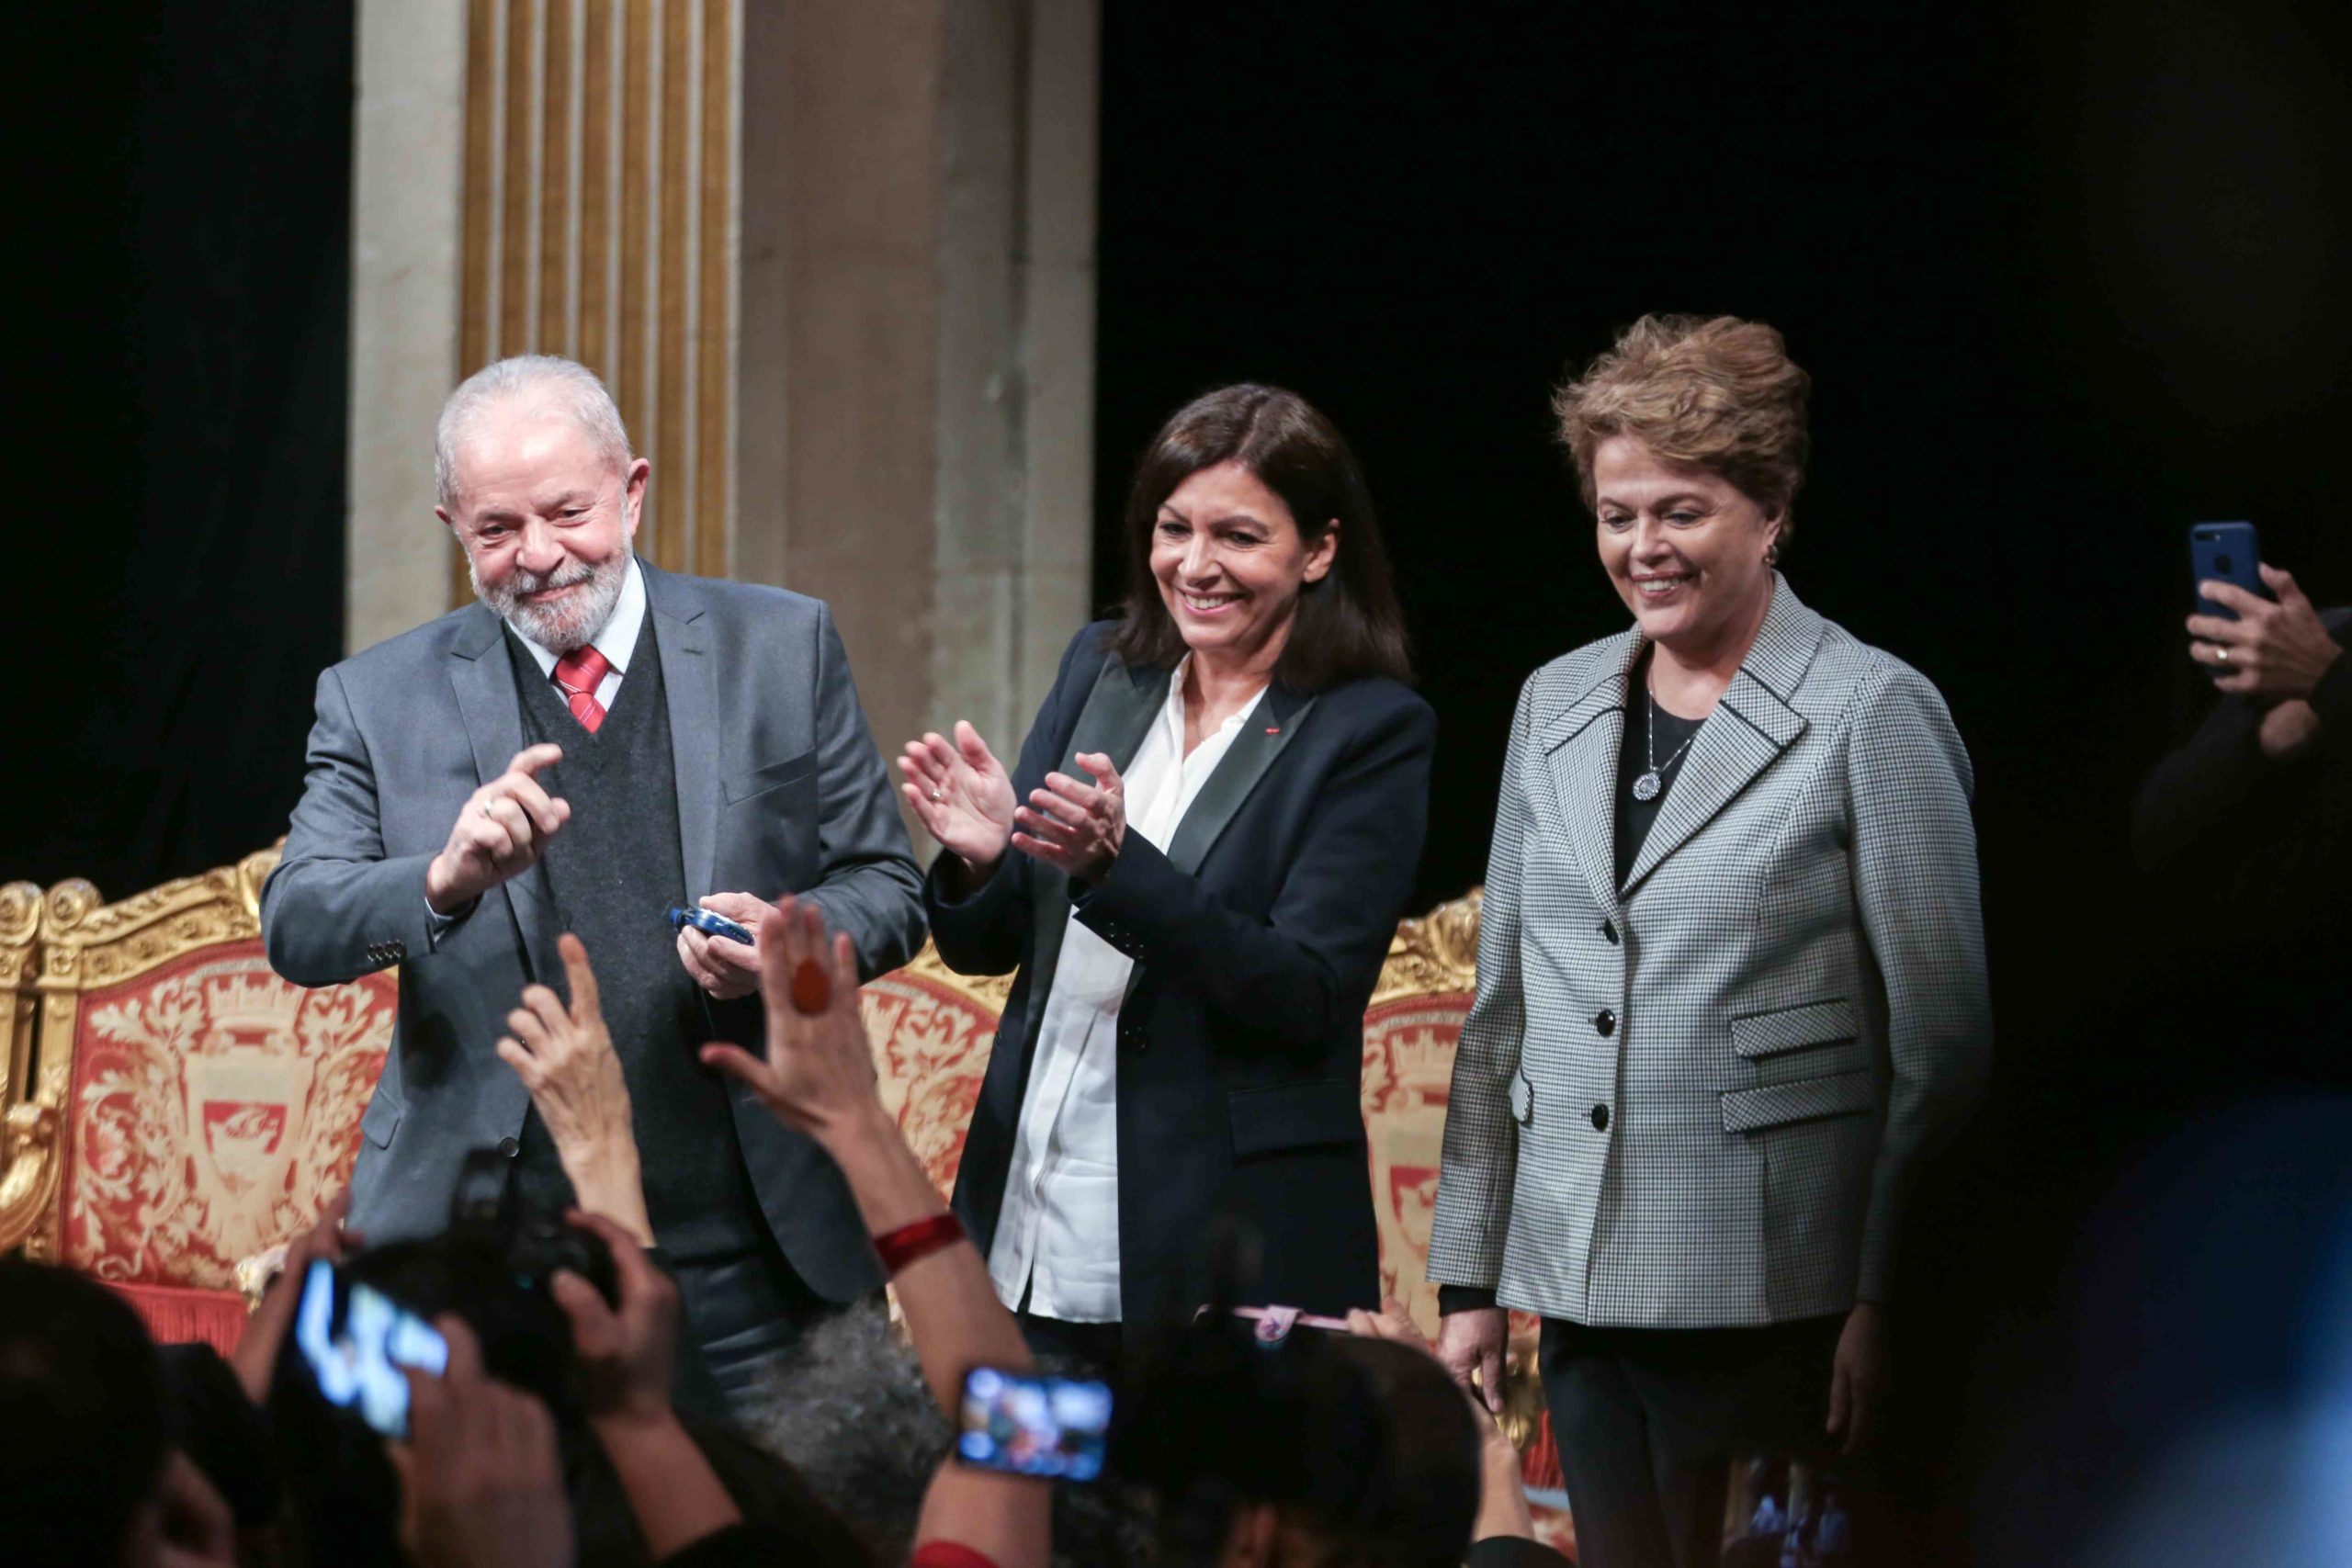 (Lto R) Former Brazilian president Luiz Inacio Lula da Silva, Paris Mayor and candidate for re-election Anne Hidalgo and Former Brazilian president Dilma Rousseff, salute the crowd as they take part in a ceremony at the City Hall of Paris, on March 2, 2020